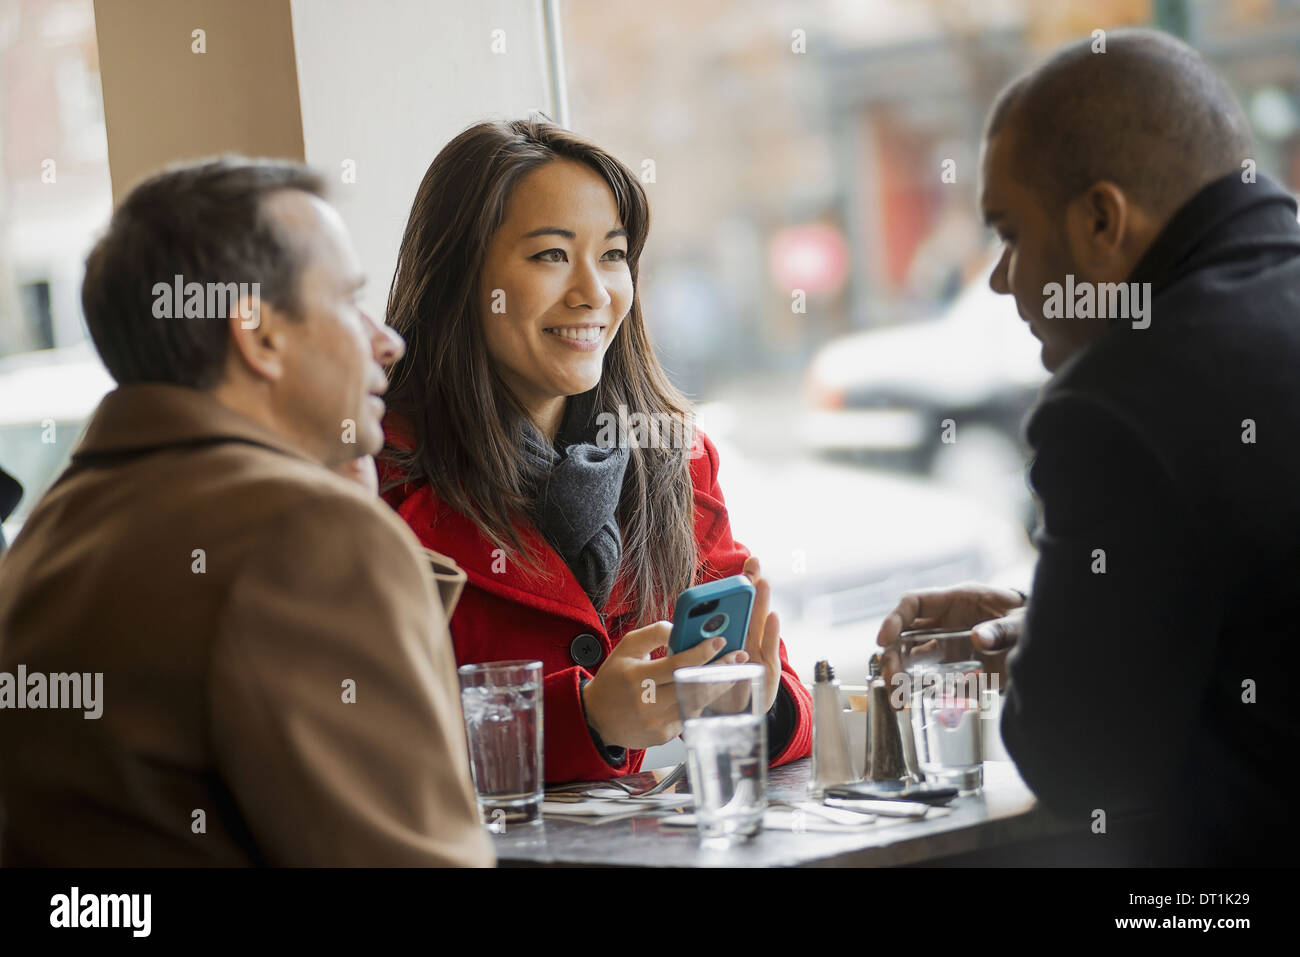 A group of people on the go using mobile phones and talking to each other In a coffee shop - Stock Image